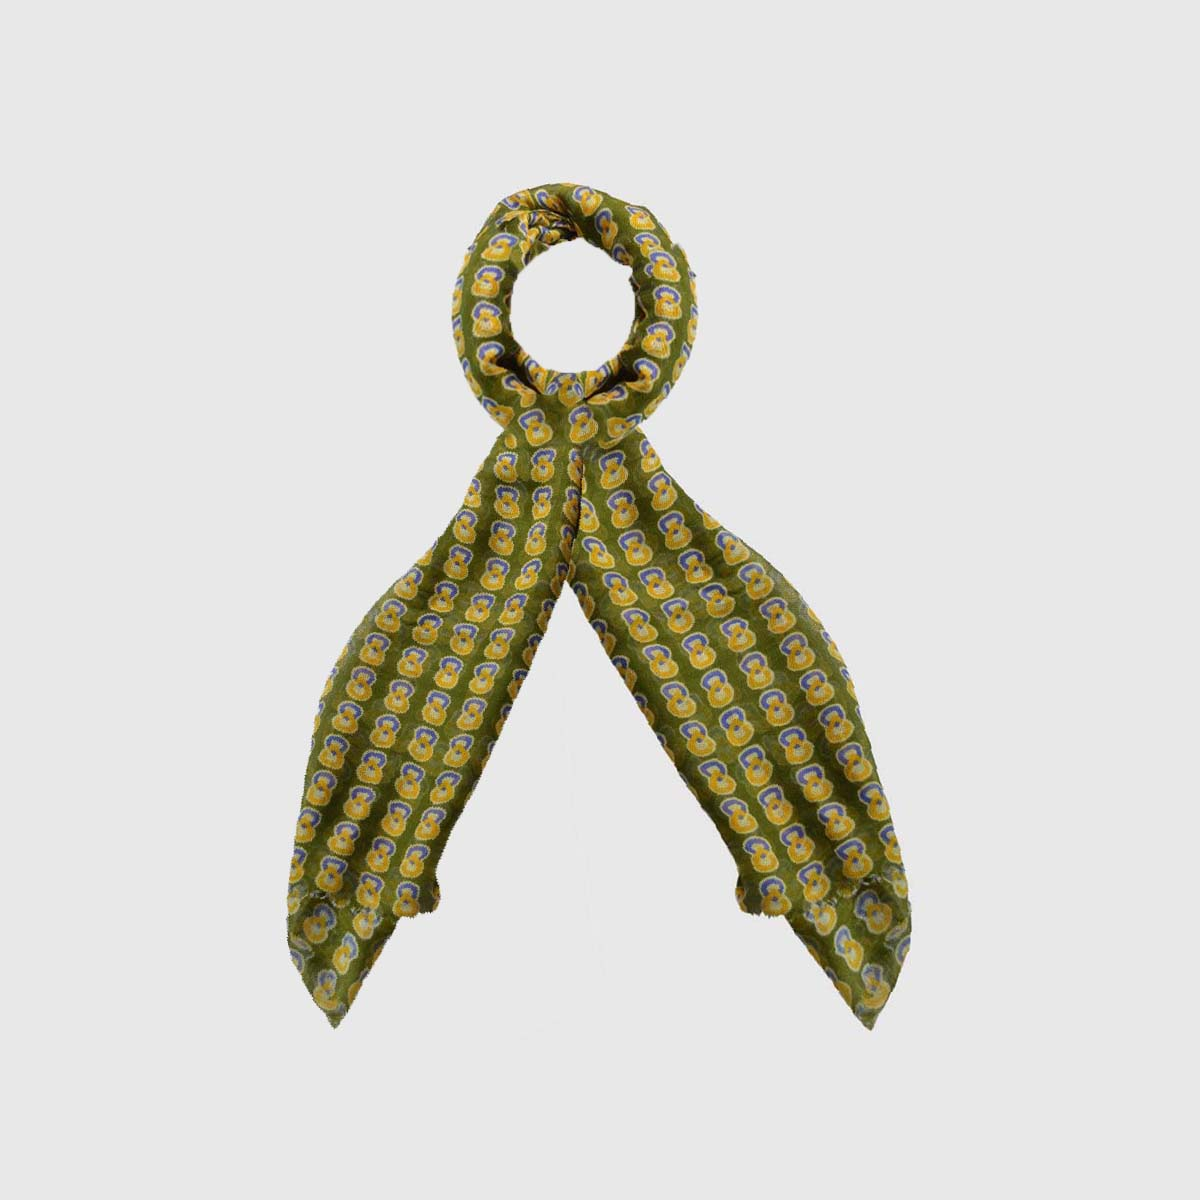 Modal Scarf green and geometric patterns